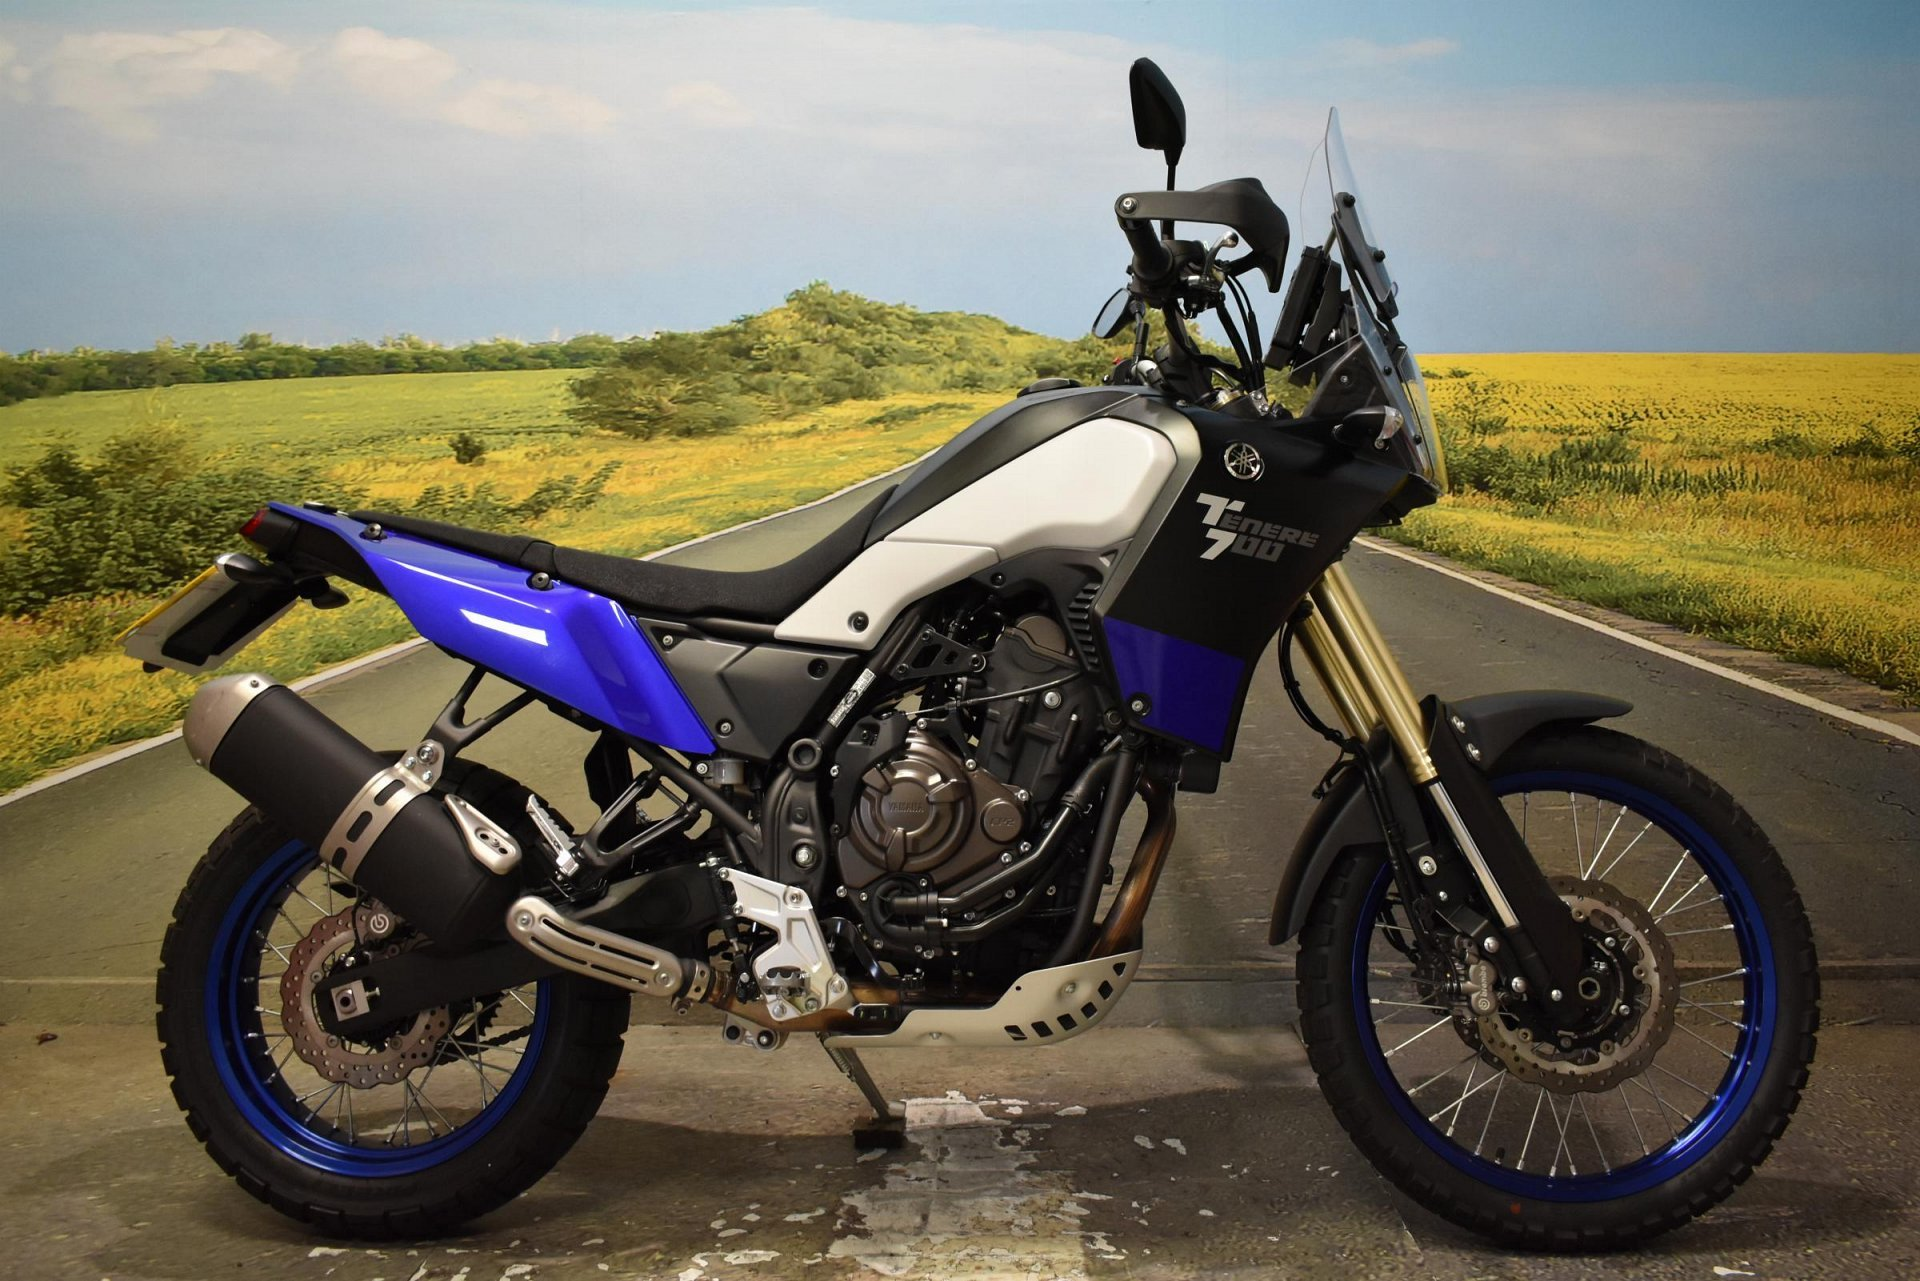 2020 Yamaha Tenere 700 for sale in Derbyshire